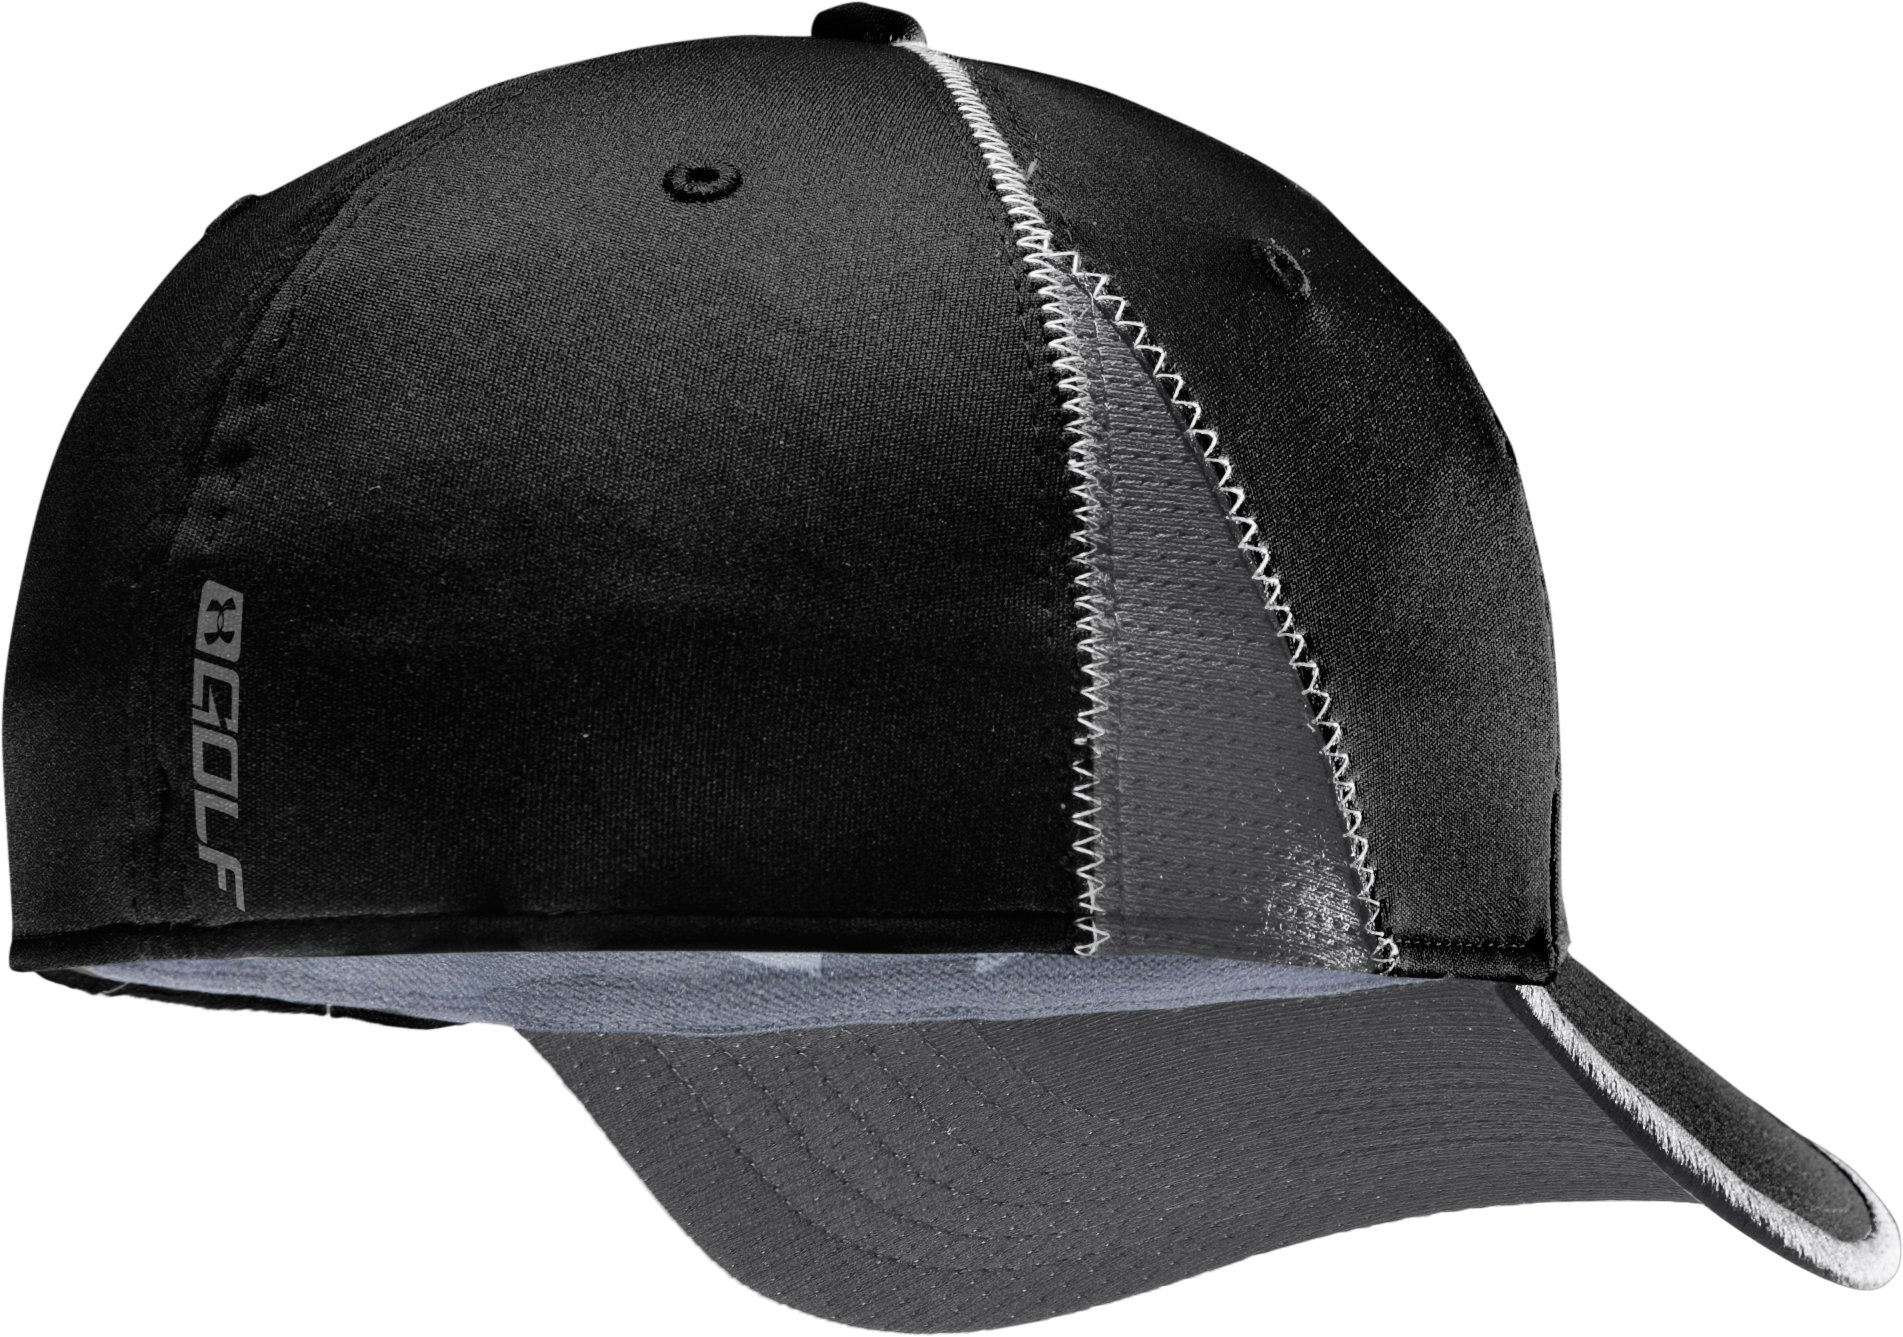 Men's coldblack® Focus Stretch Fit Golf Cap, Black , undefined